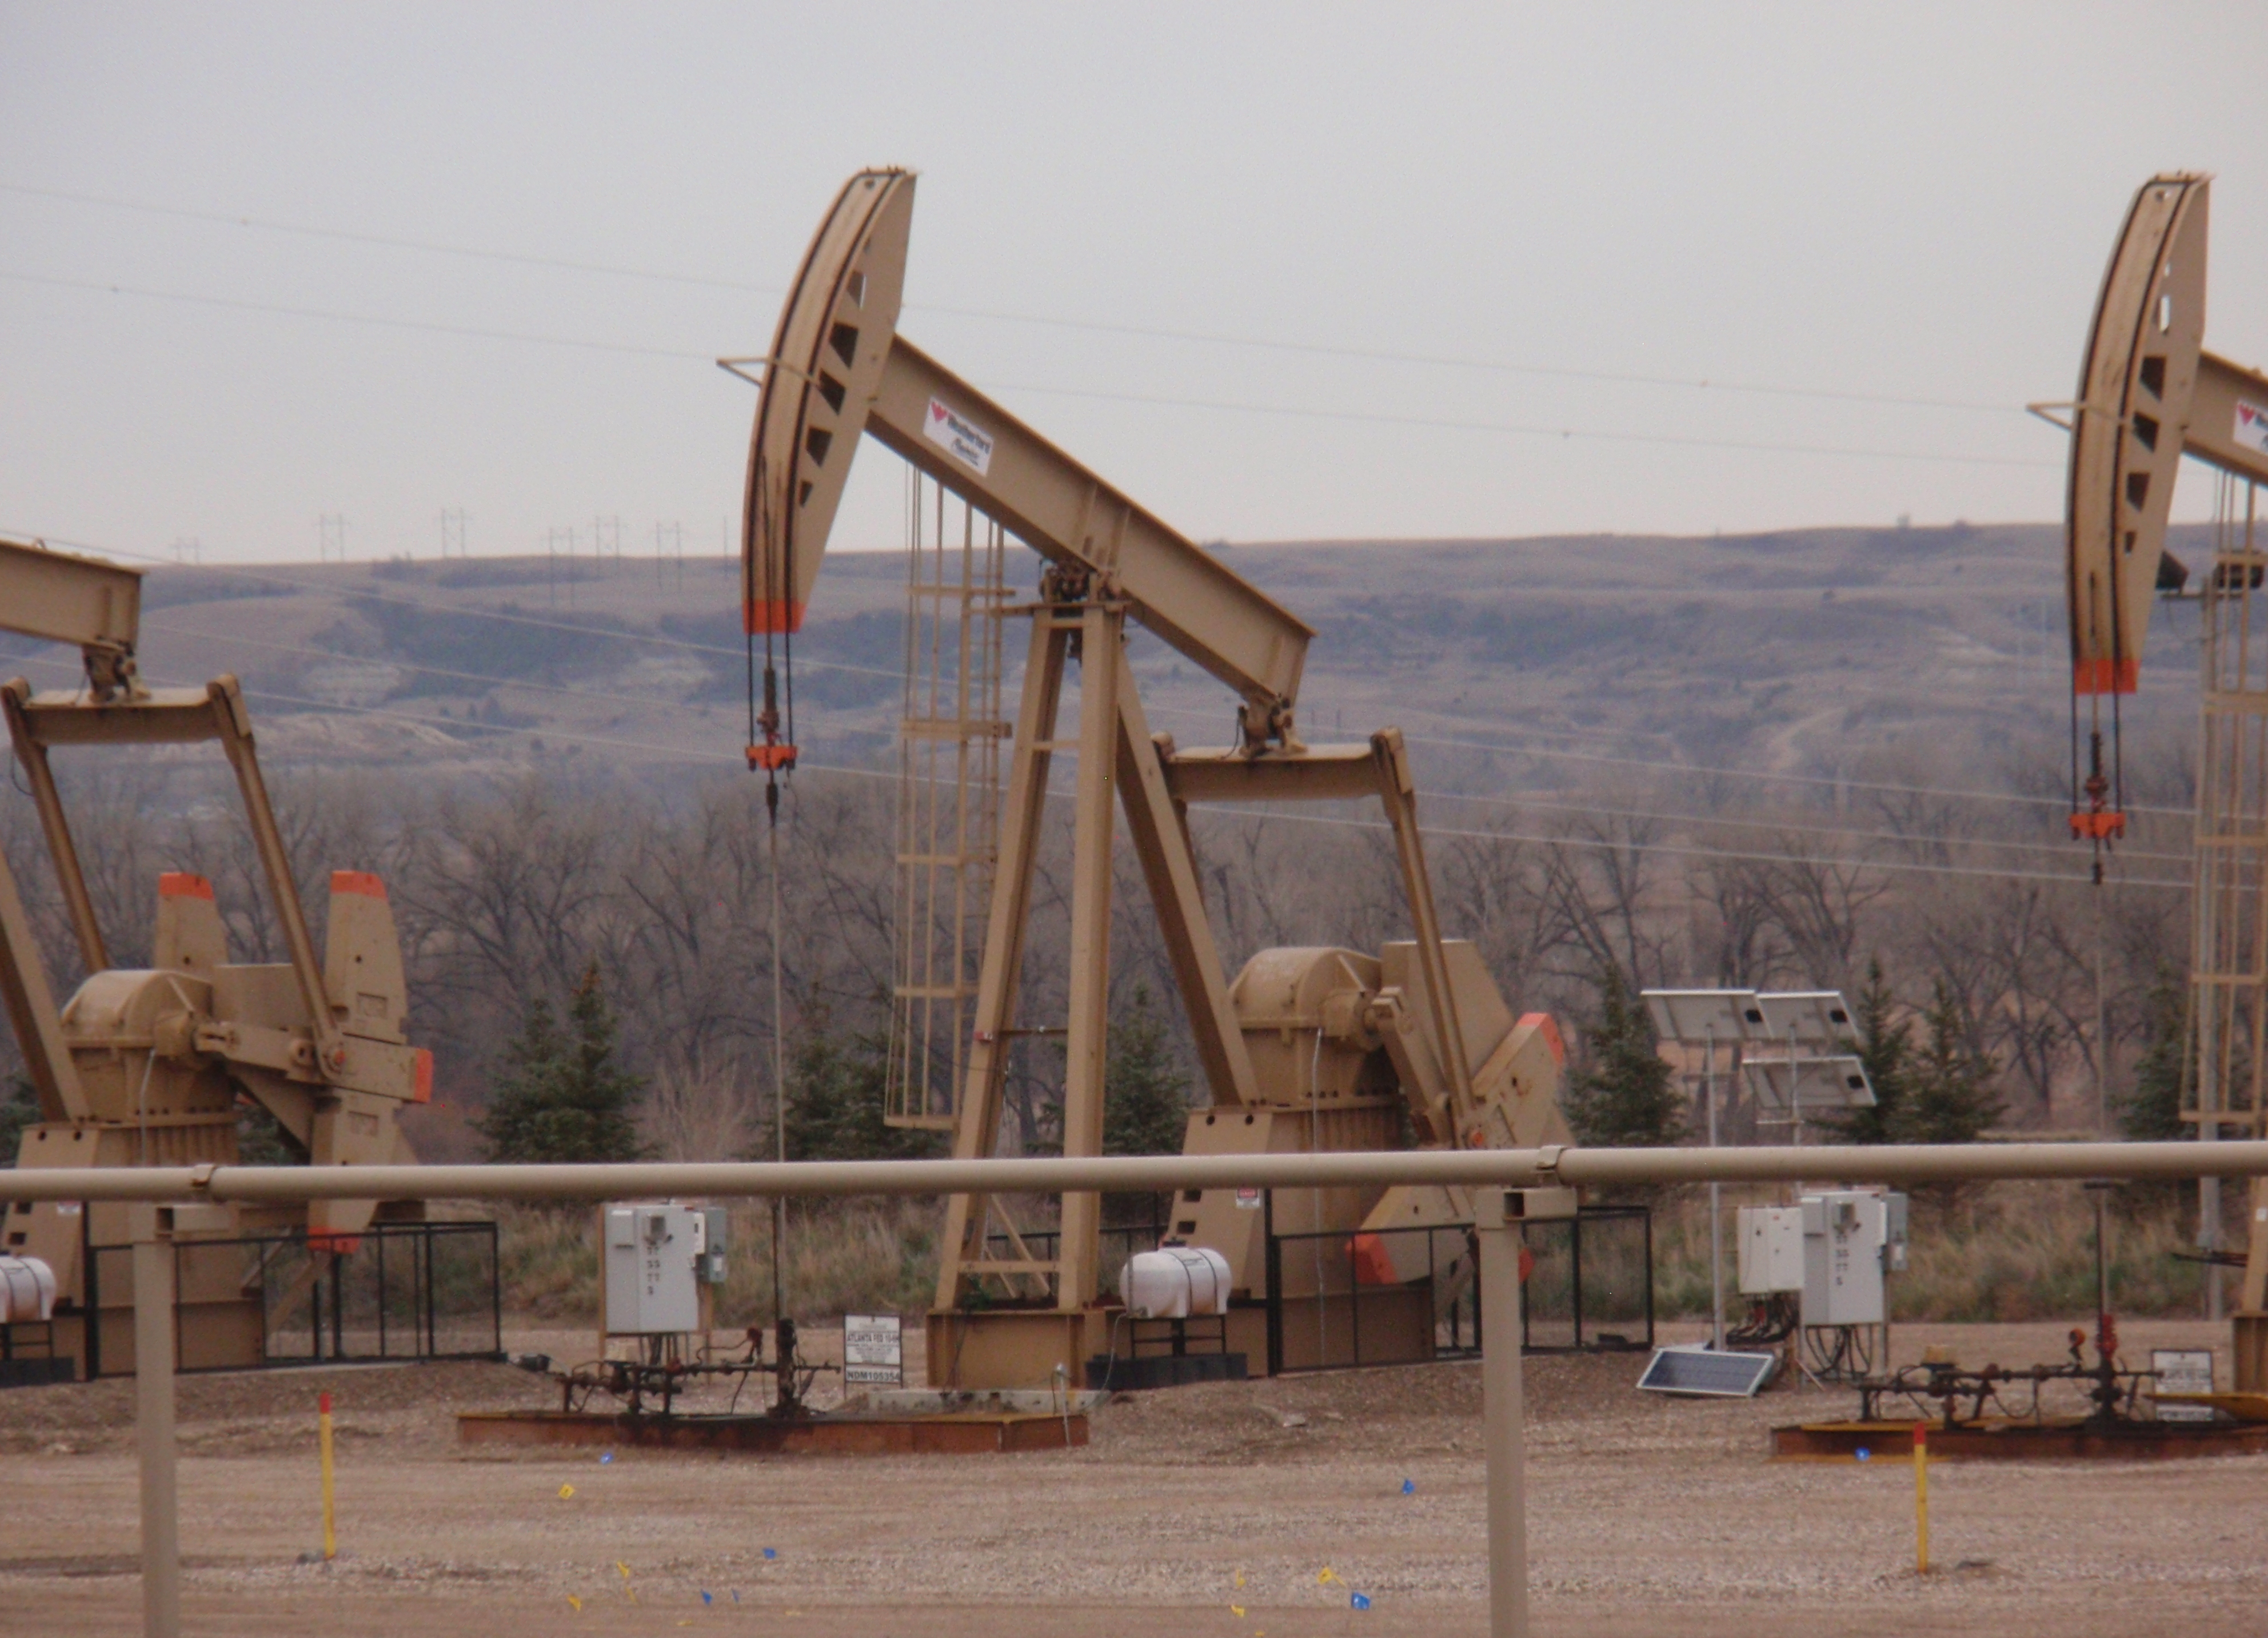 Close up of pump jack. Photo by James Ulvog.